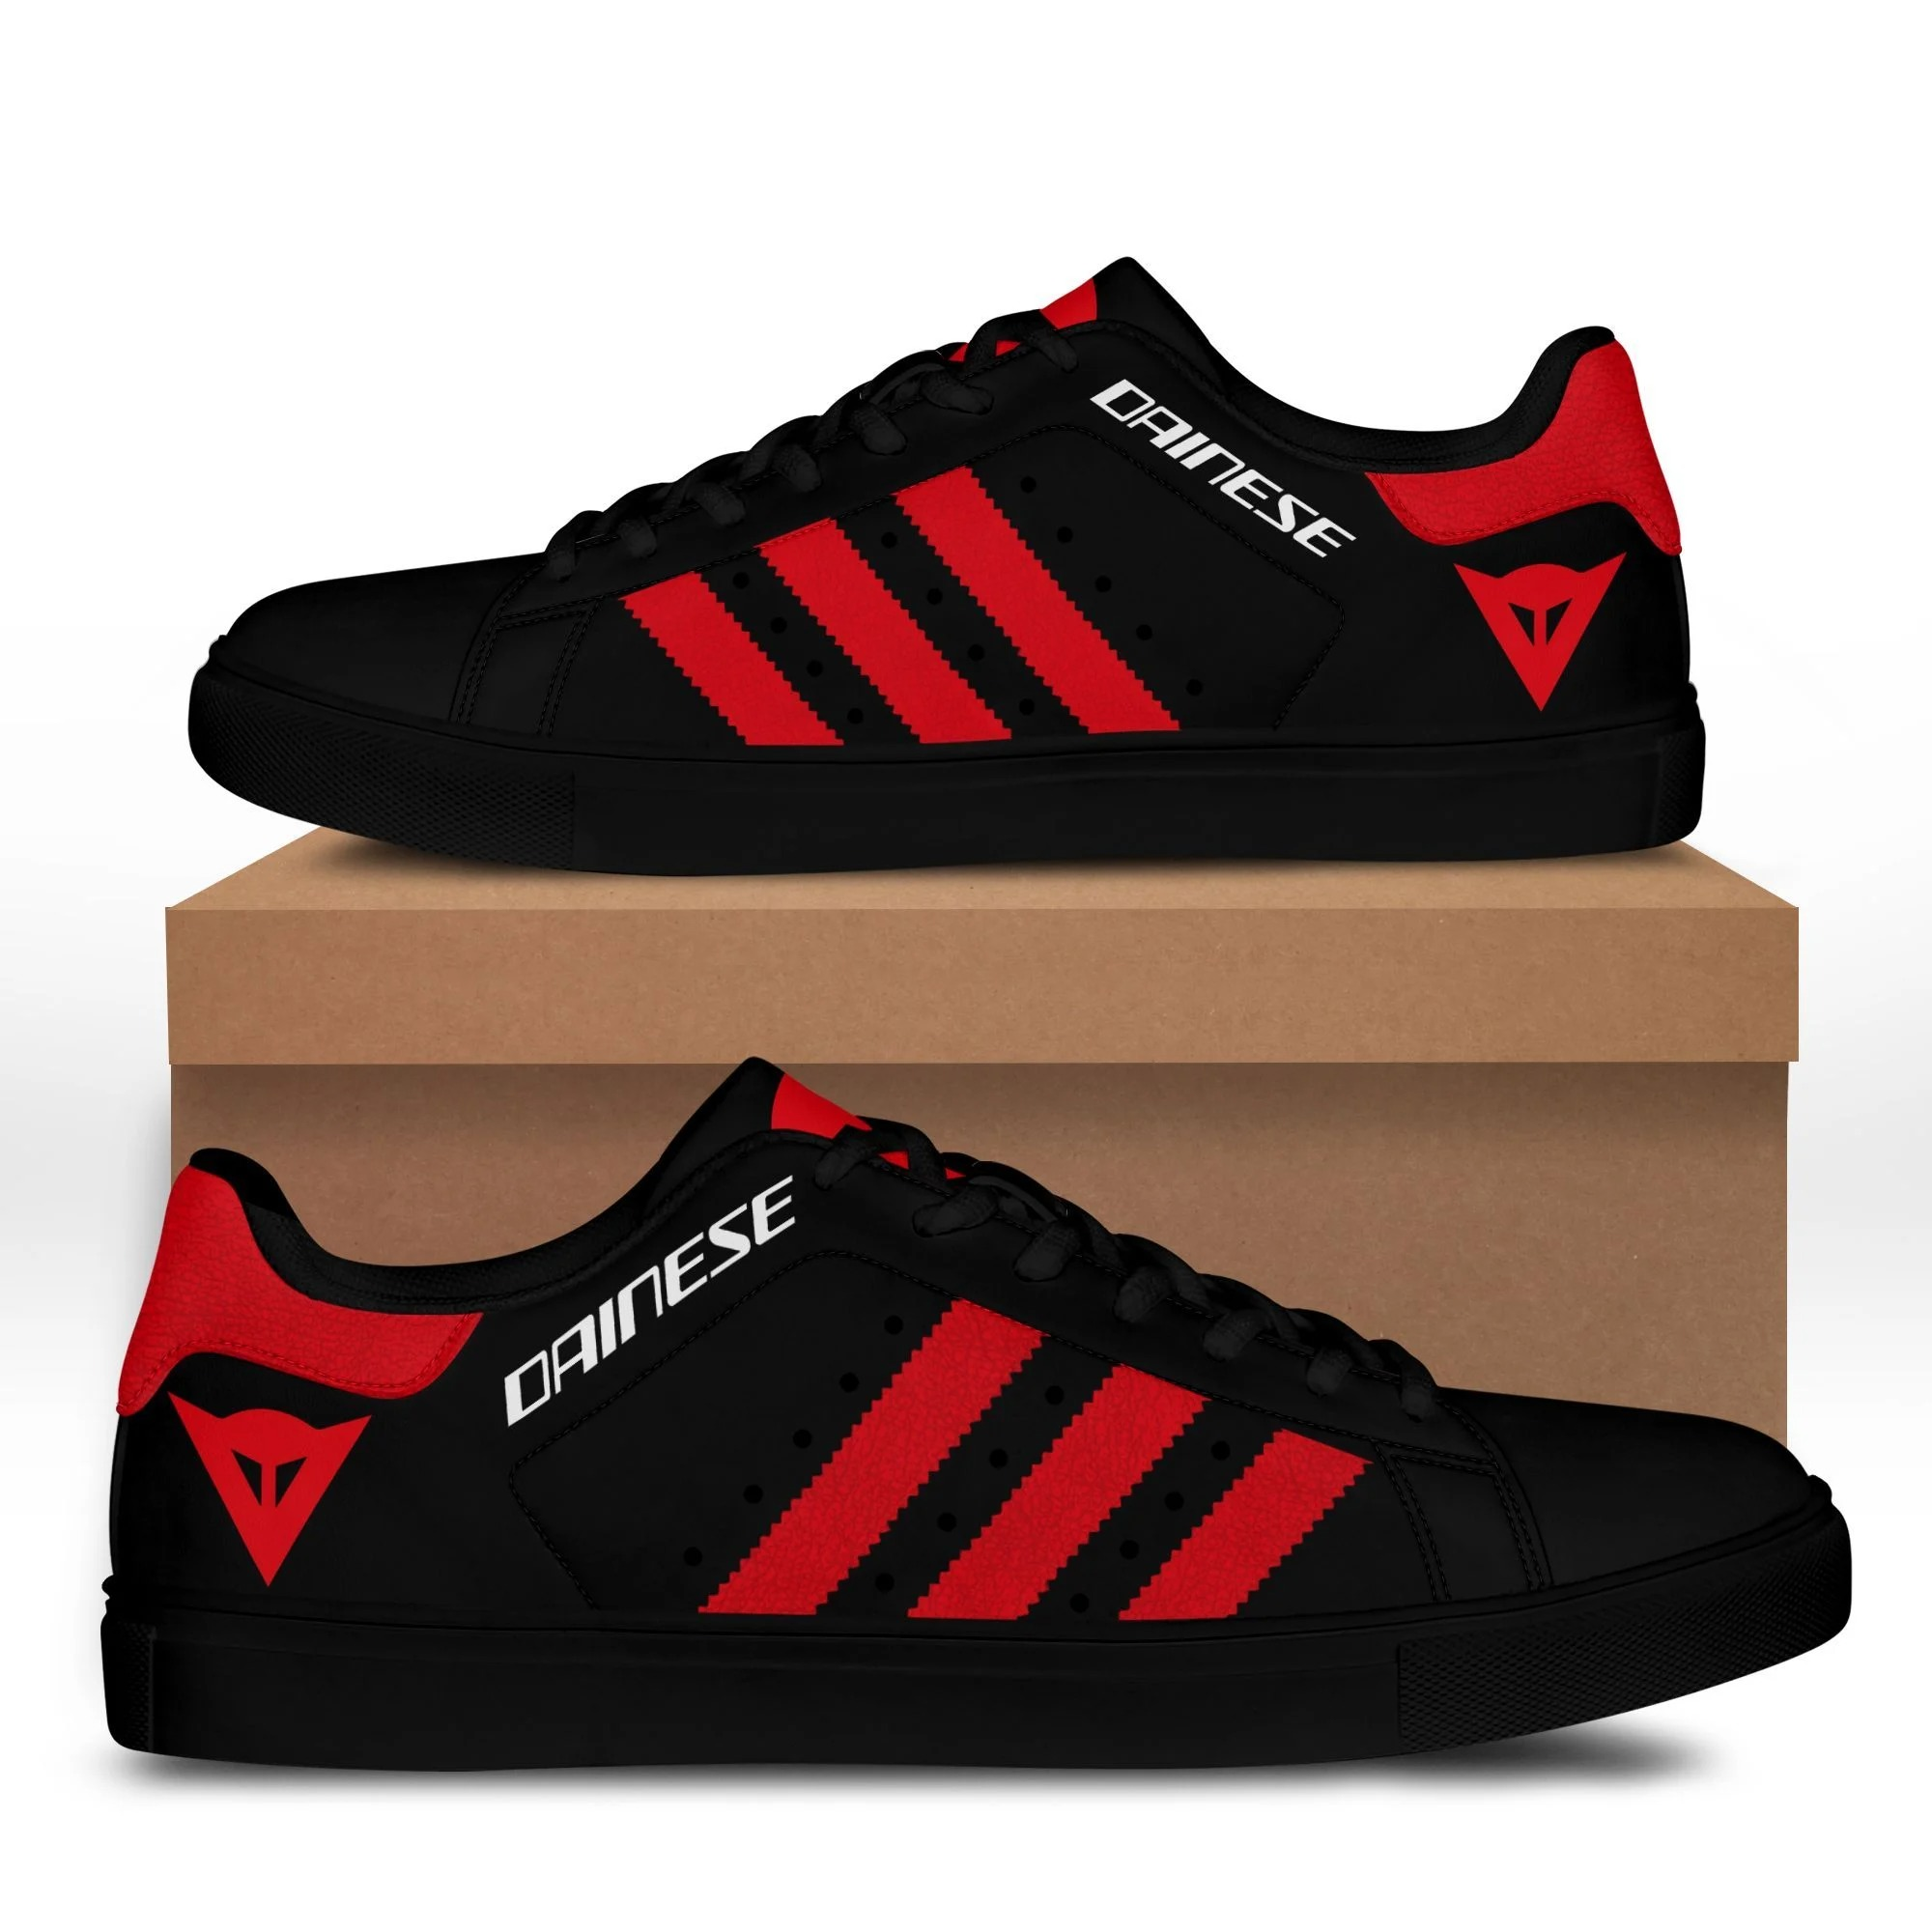 Dainese stan smith low top shoes 3